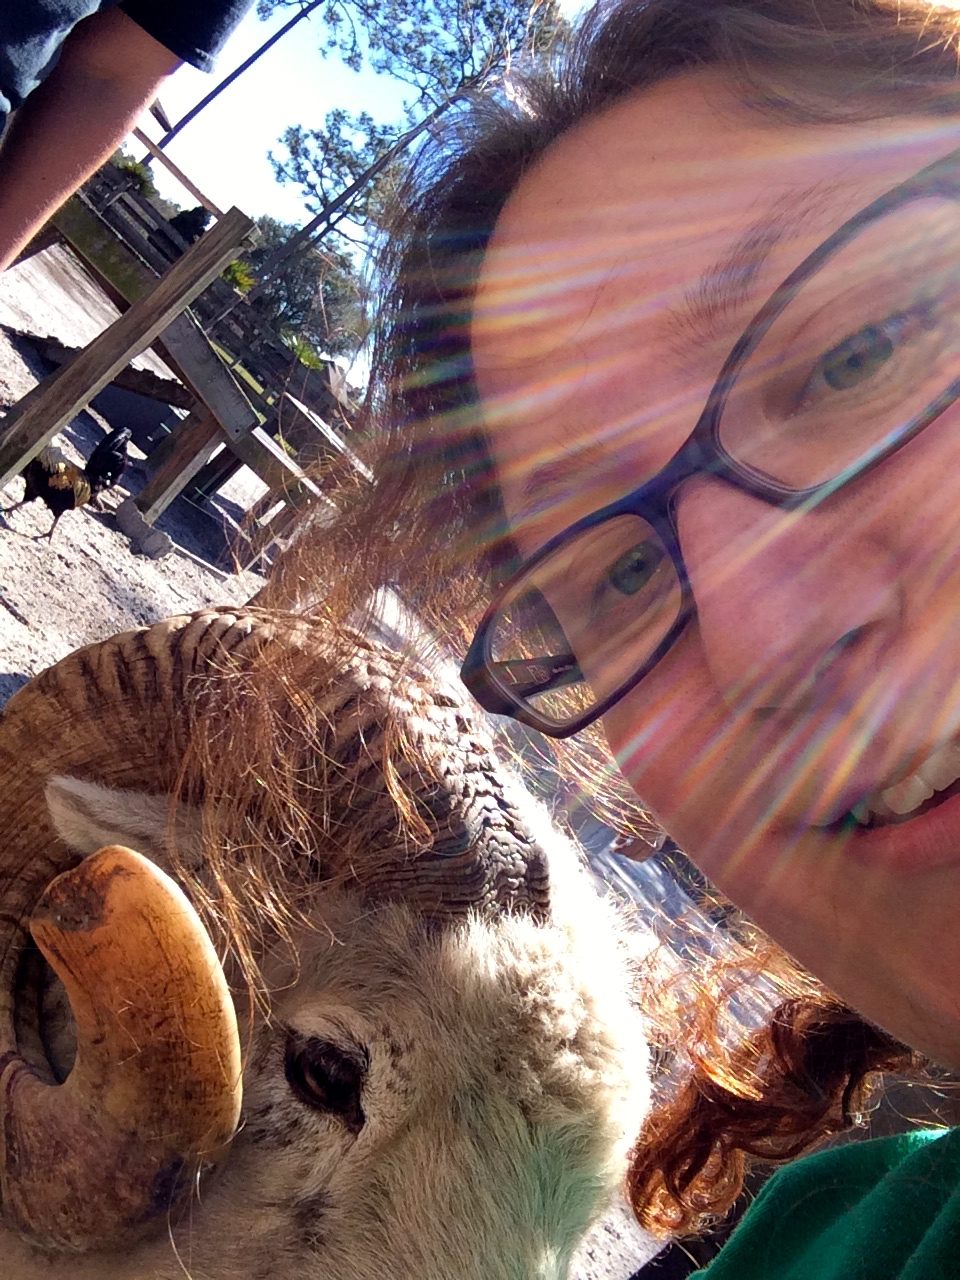 Weirdo taking a selfie with a sheep